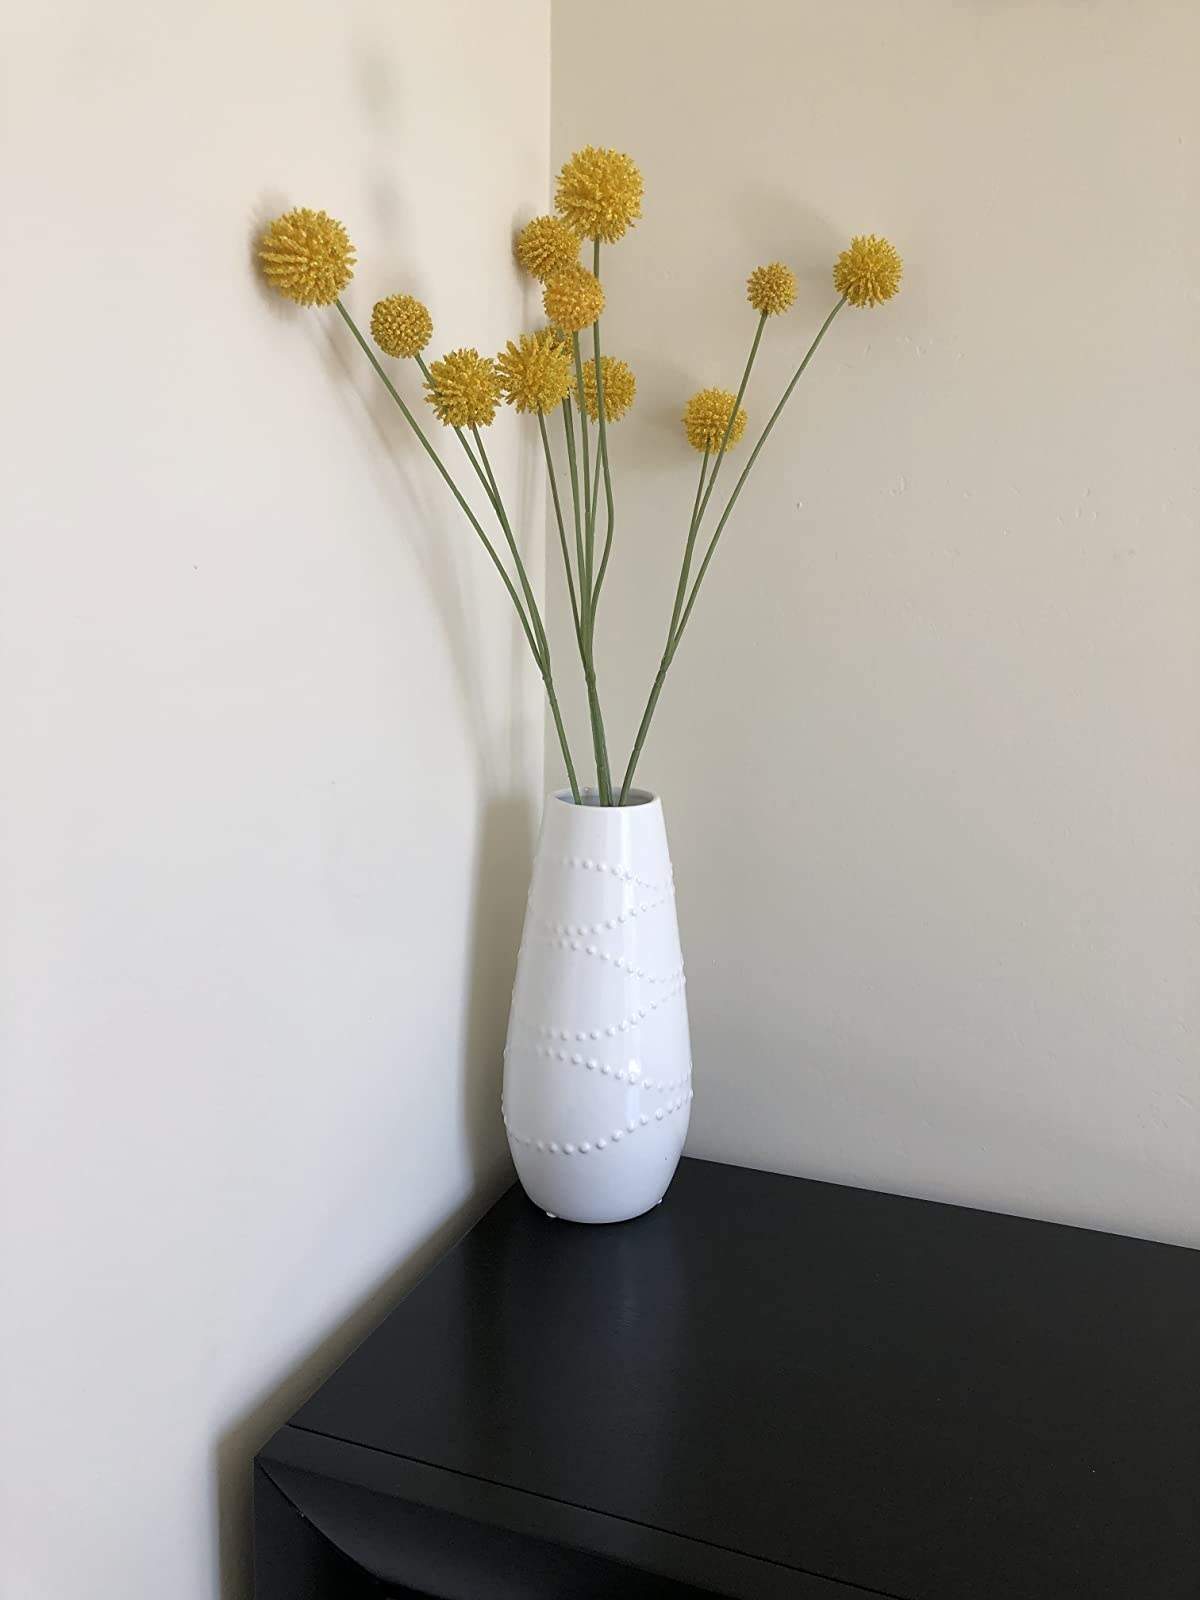 reviewer photo showing the vase with yellow flowers coming out of it